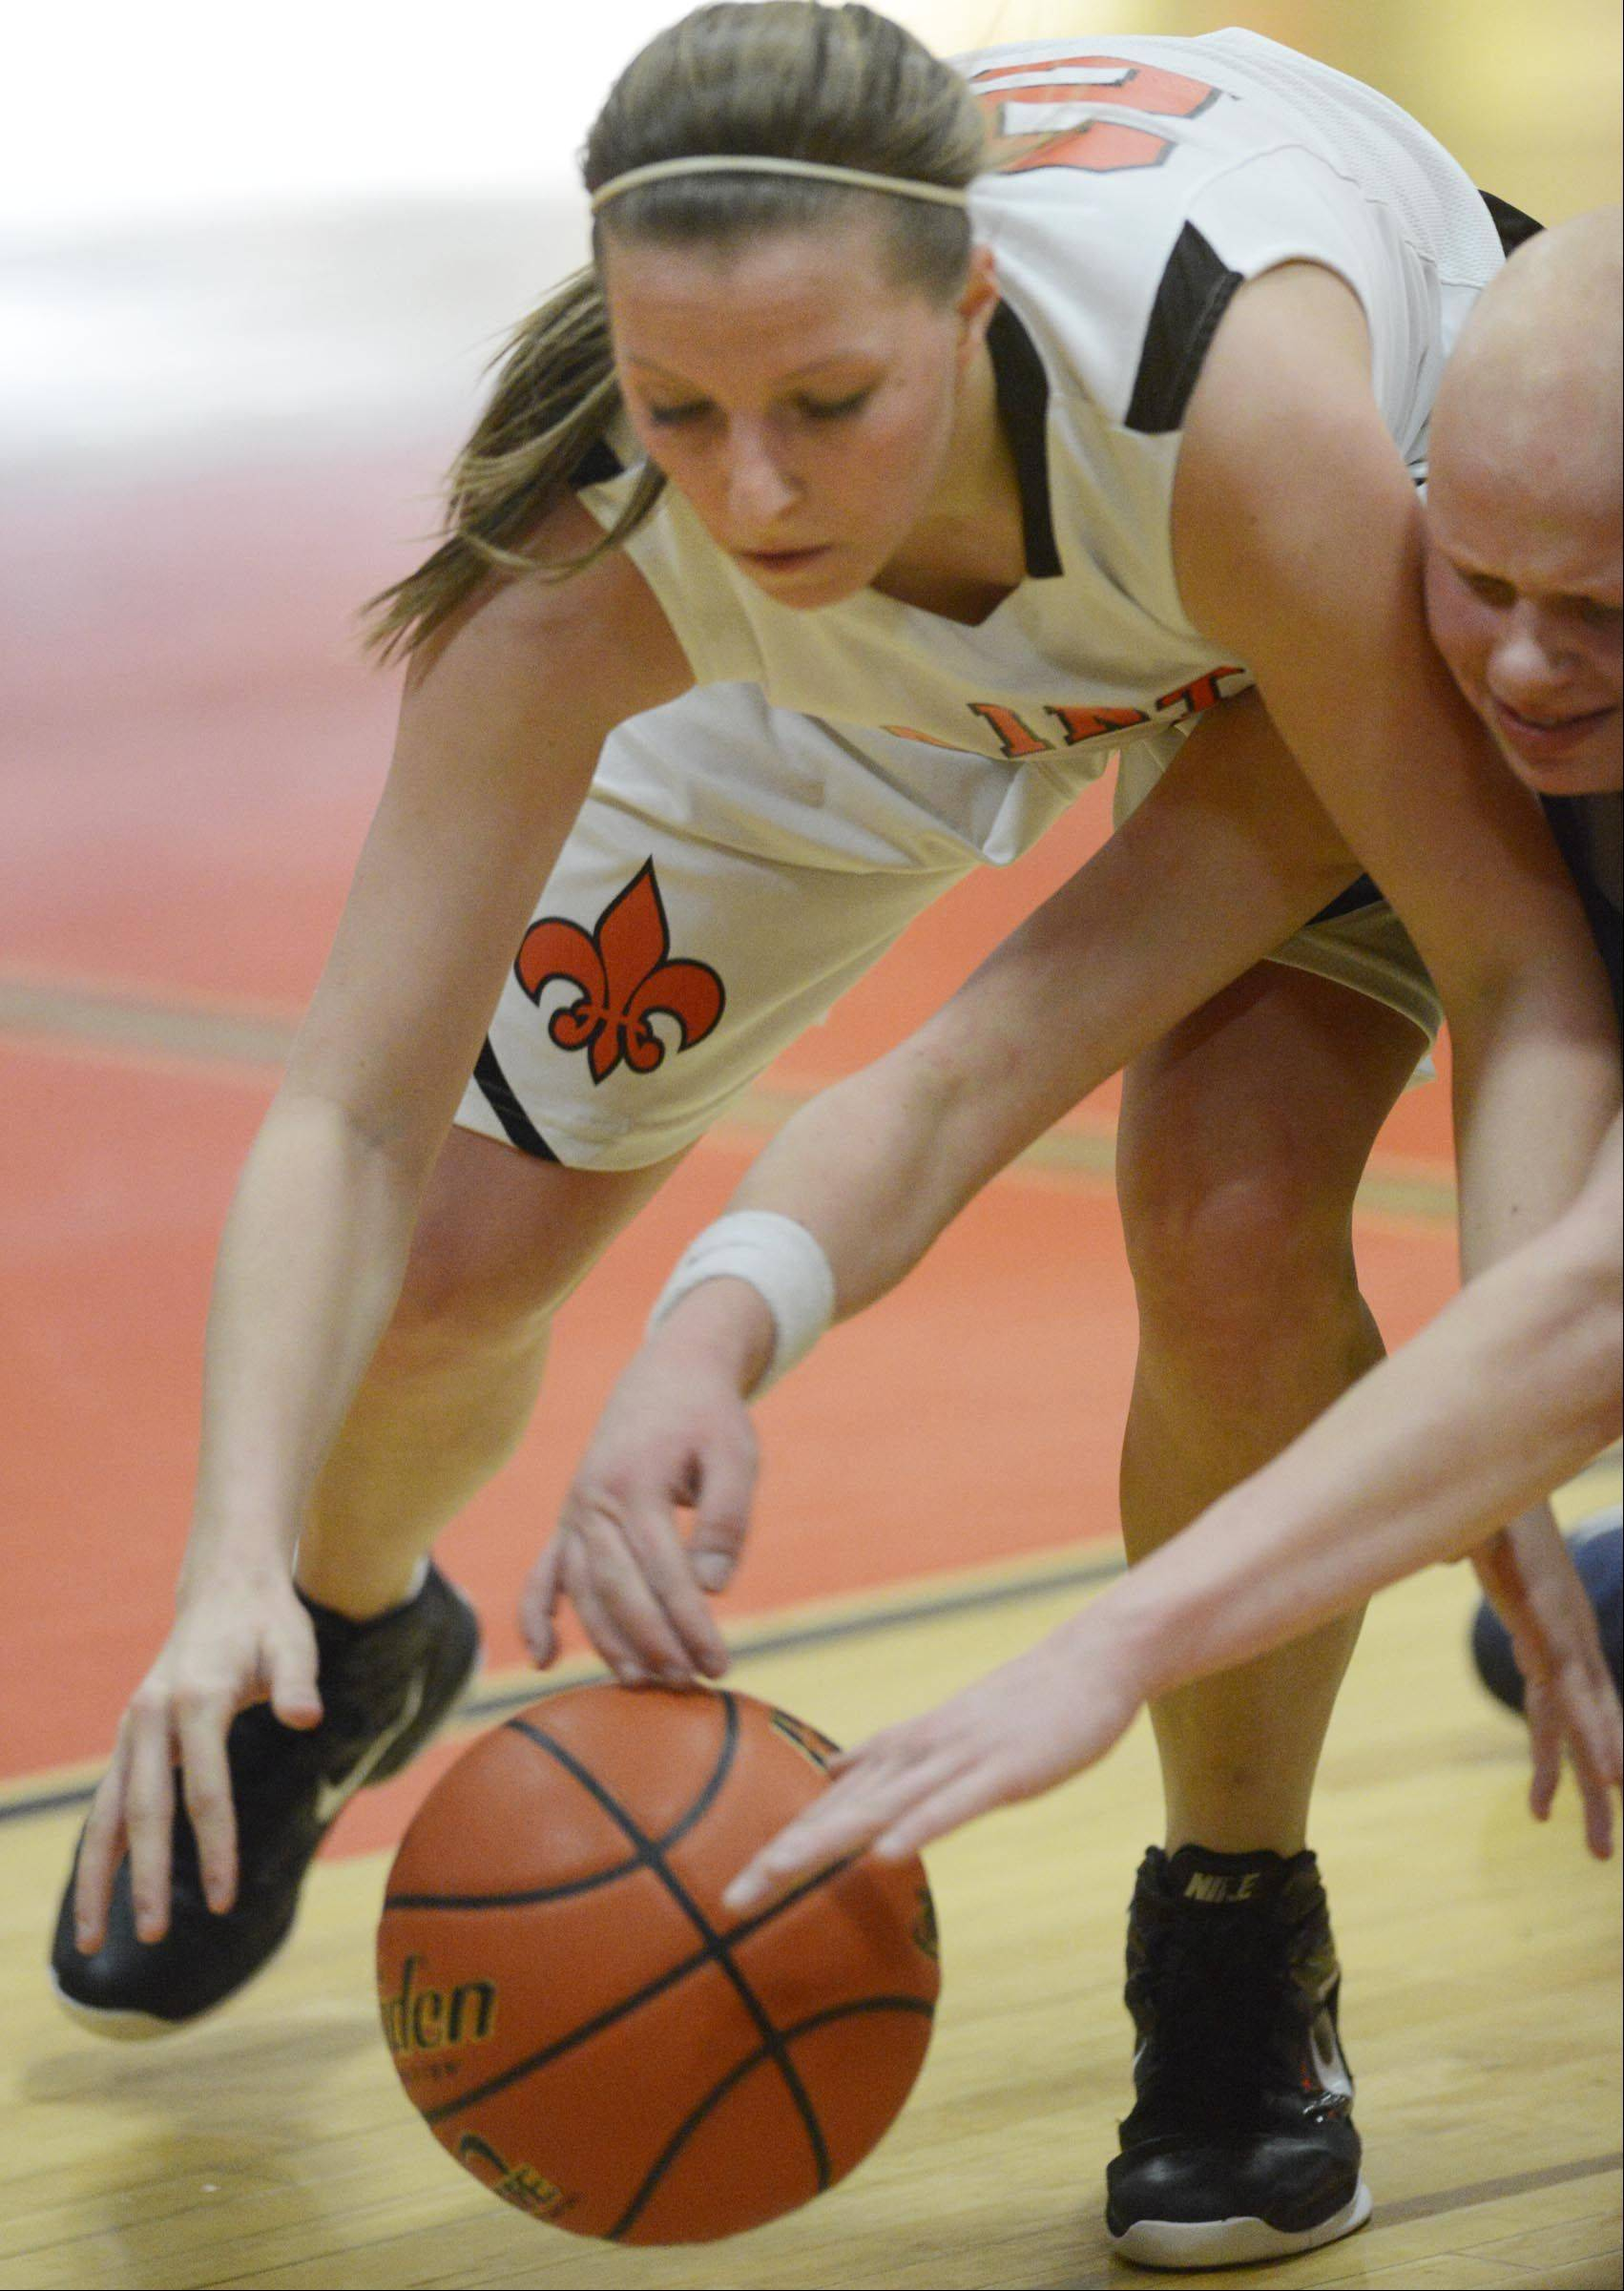 Here's St. Charles East's Laney Deckrow doing what she can do with the best � hustling for a loose ball � as she earned a spot on Craig Brueske's All-Floor Burn team, while on the right one of Craig's top 3-point shooters, Batavia's Micah Coffey, fires a jumper.